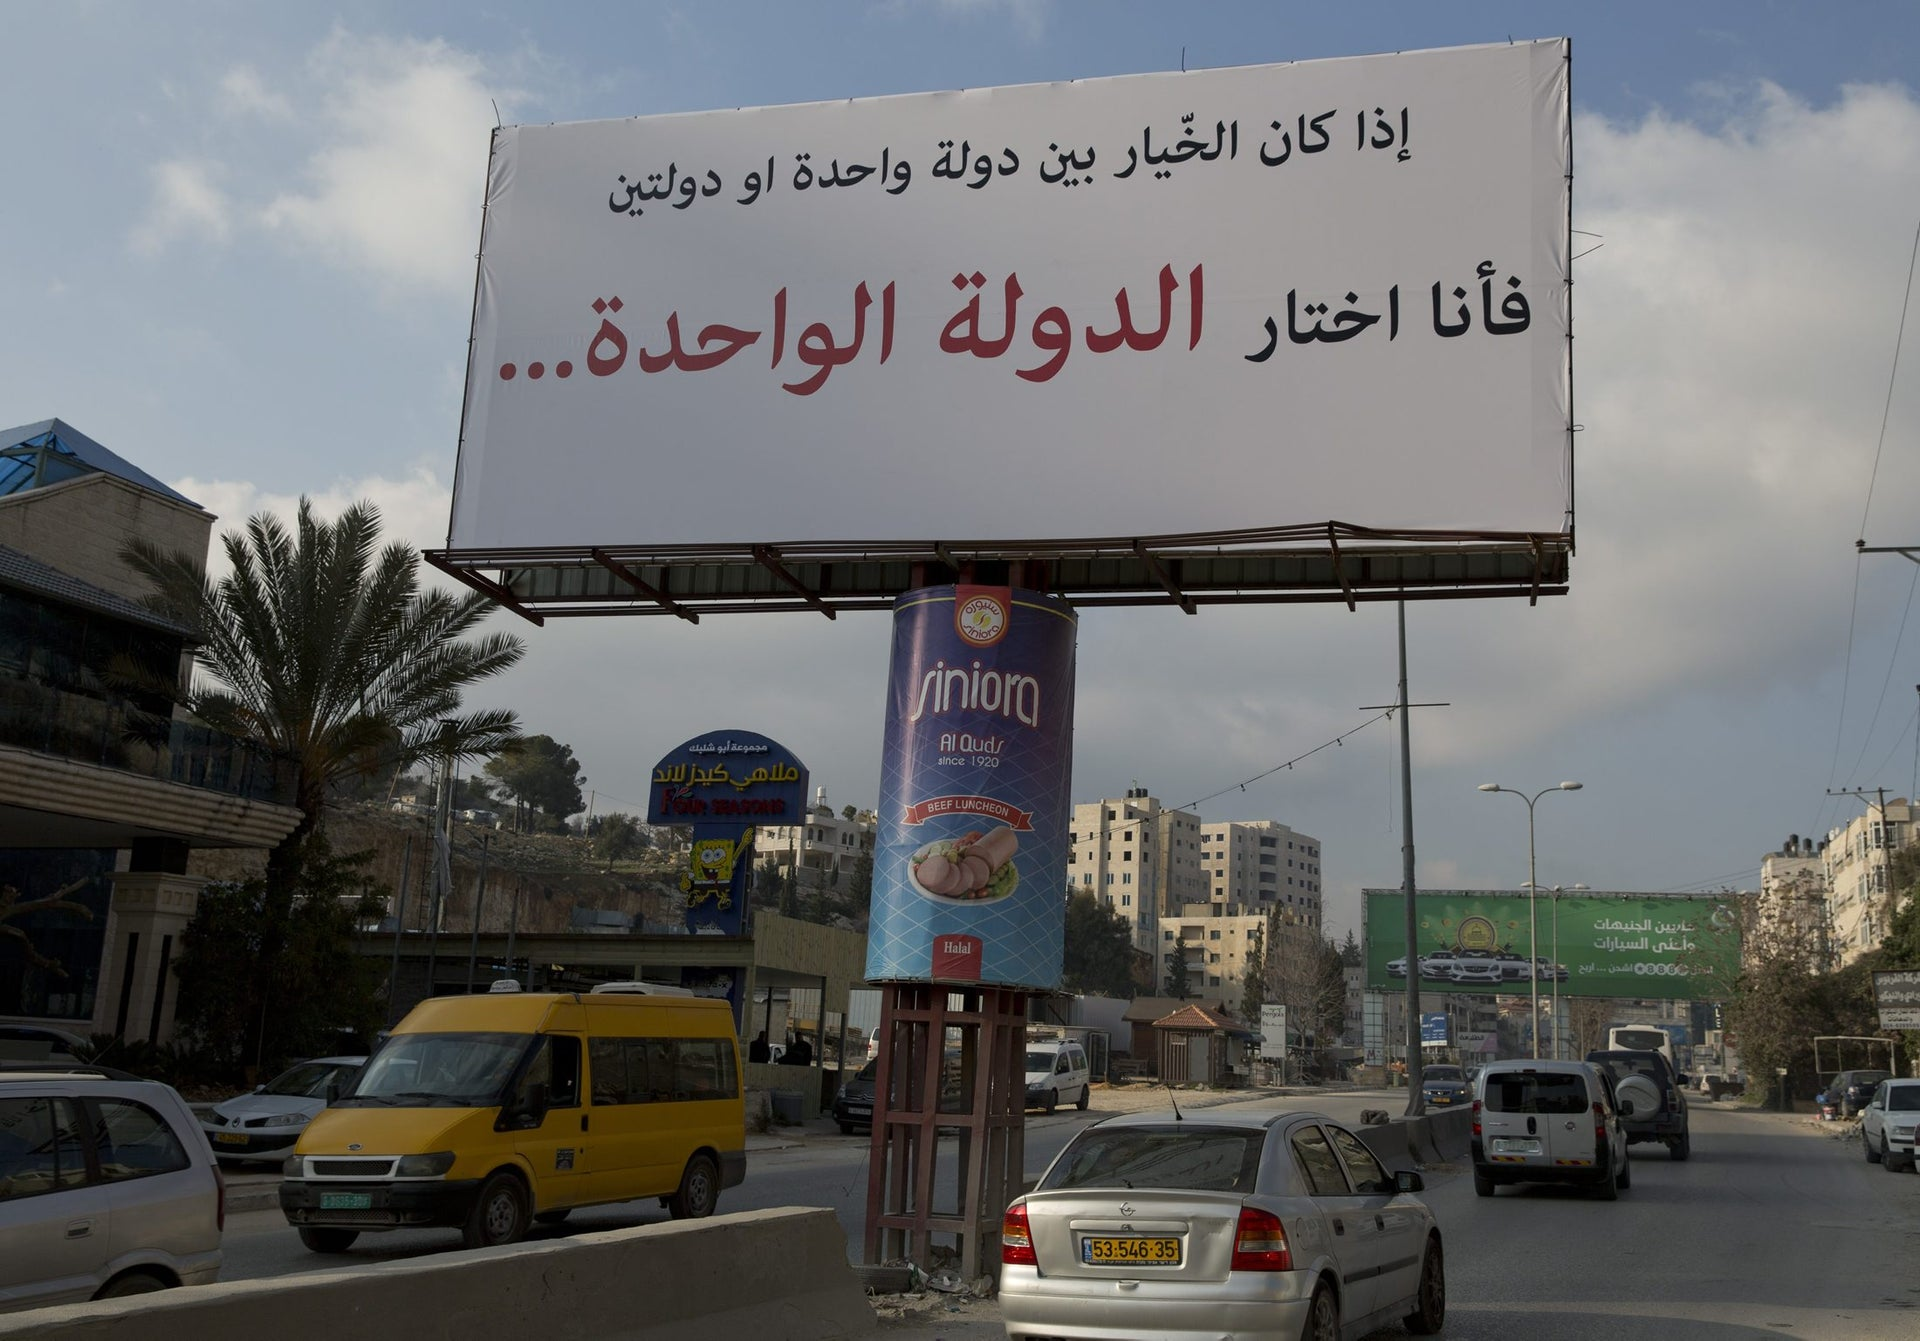 A banner supporting the creation of a single state for Israelis and Palestinians in the West Bank city of Ramallah, Feb. 23, 2017.